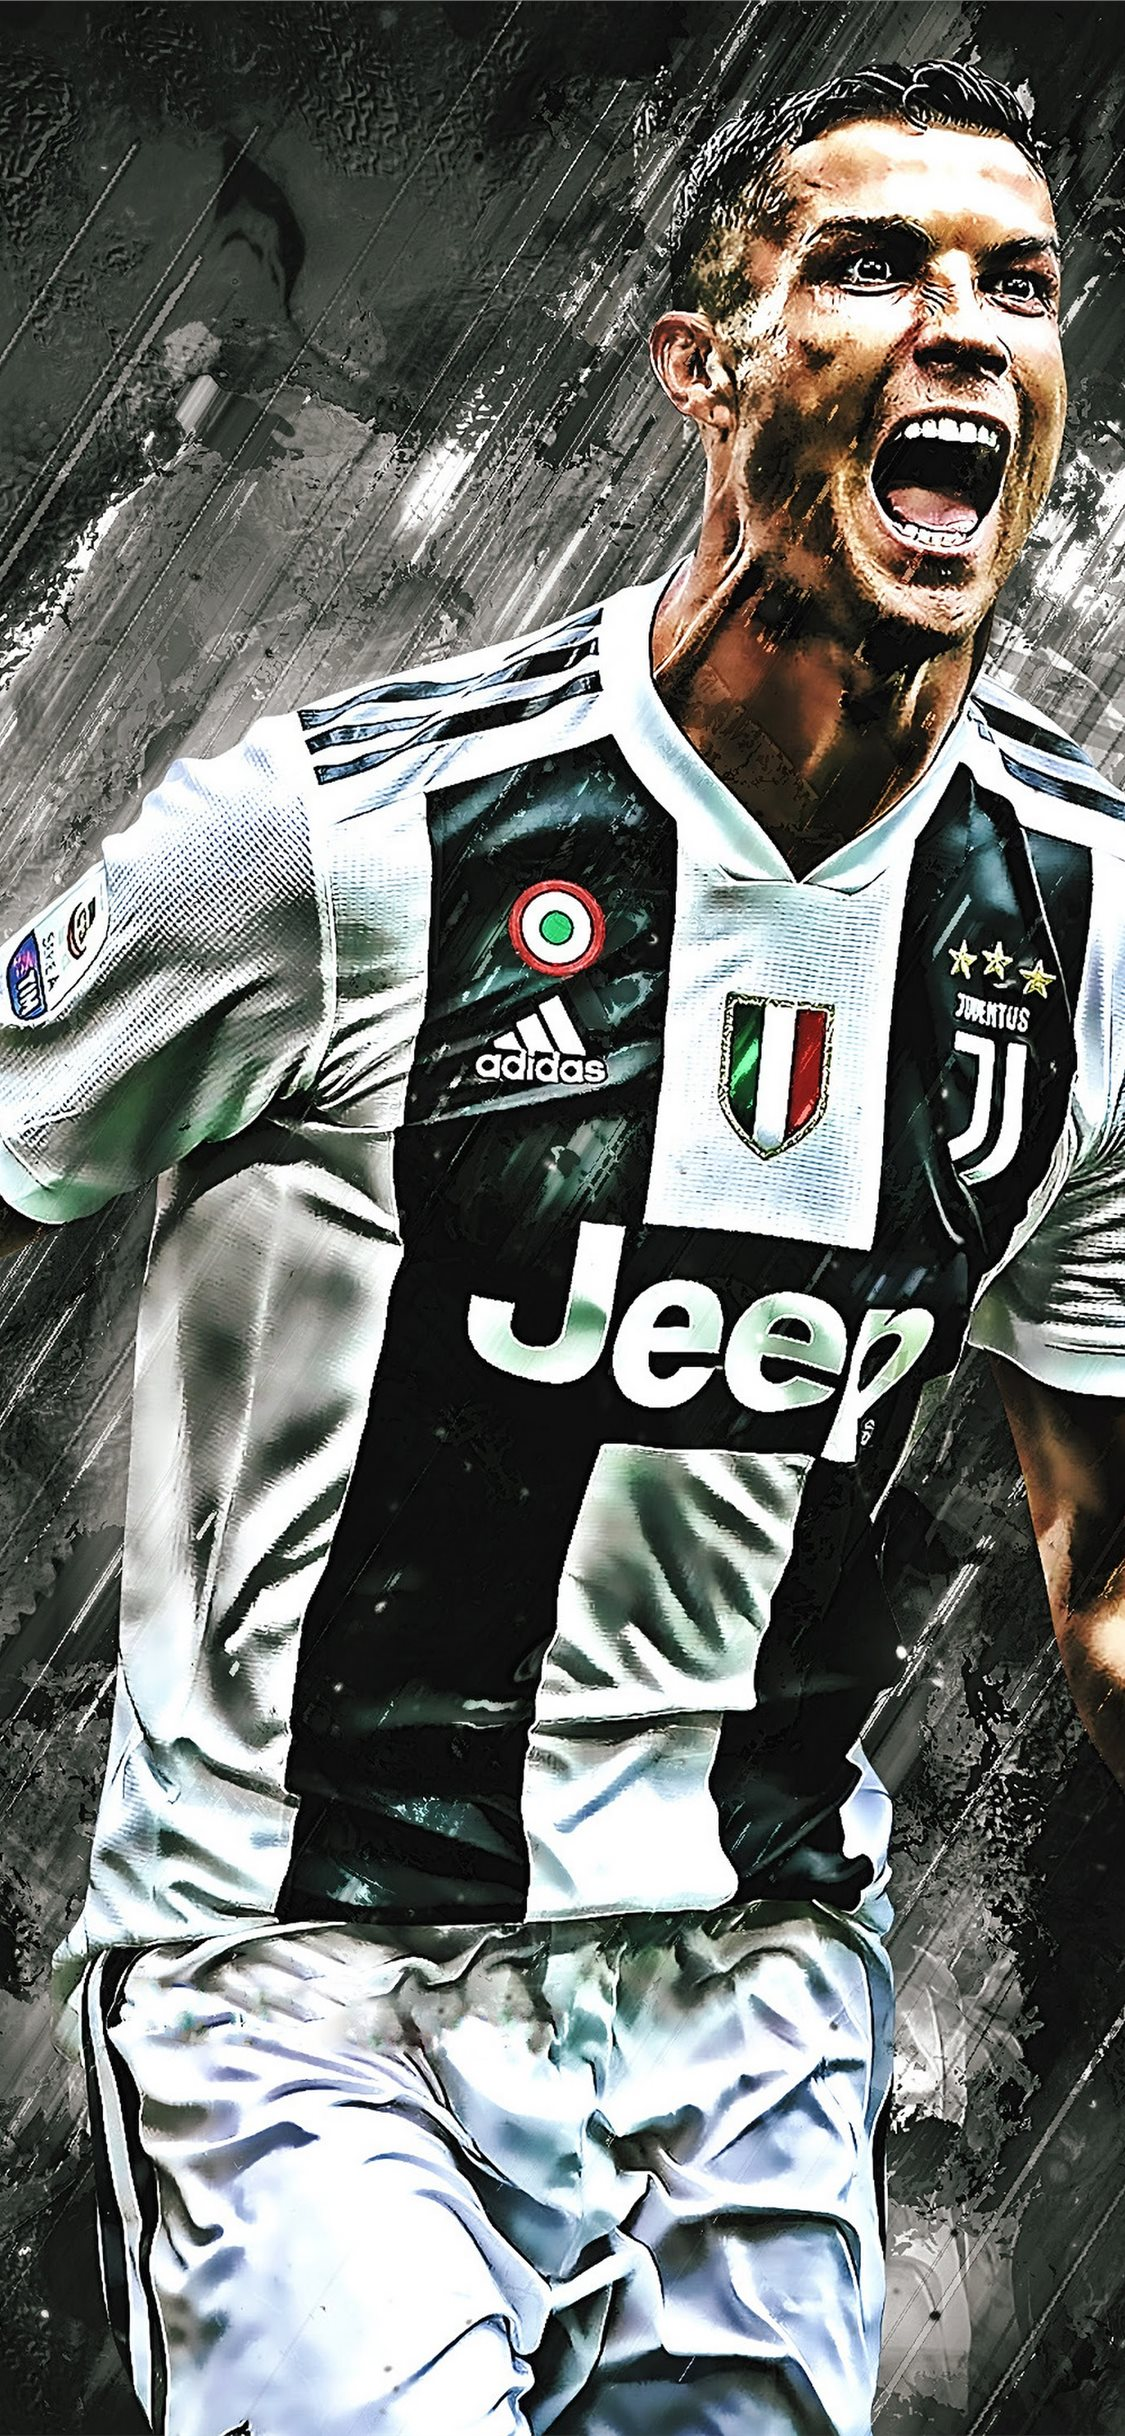 Cristiano Ronaldo Football Player 4k Iphone X Wallpapers Free Download